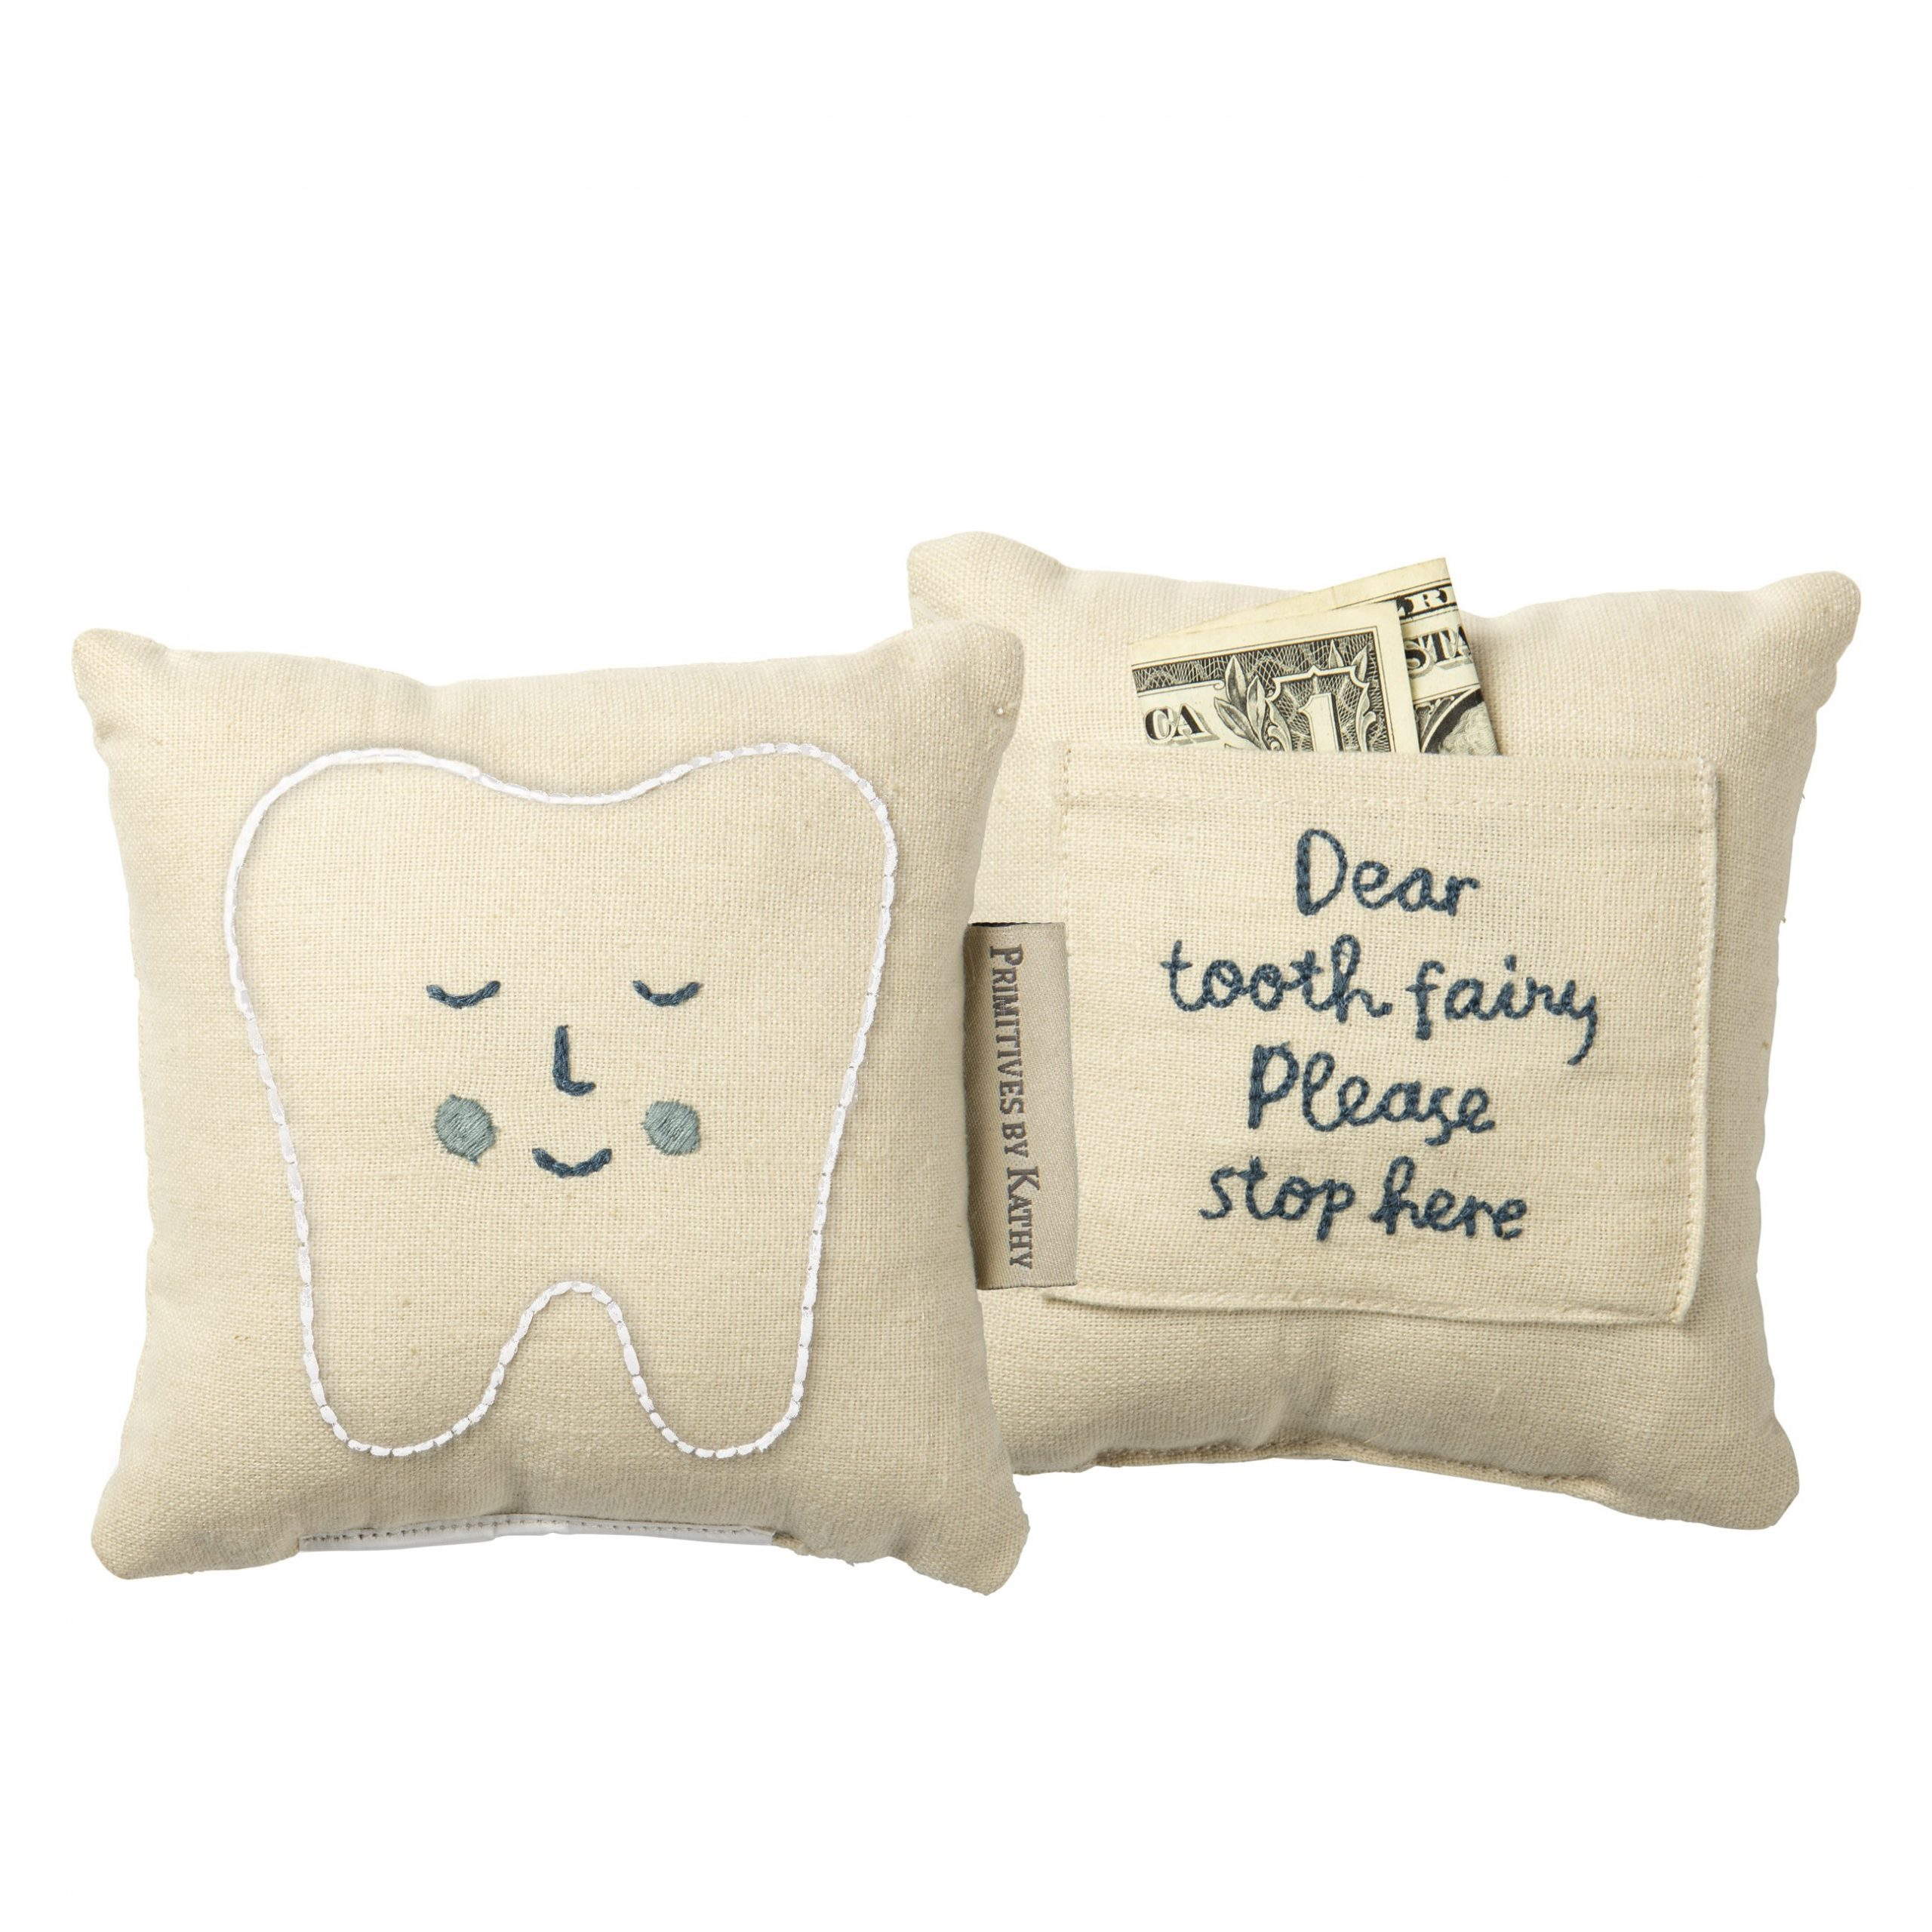 Blue Patriots Football Tooth Fairy Pillow with Tooth Pocket New England Patriots Tooth Fairy Pillow Ready to Ship